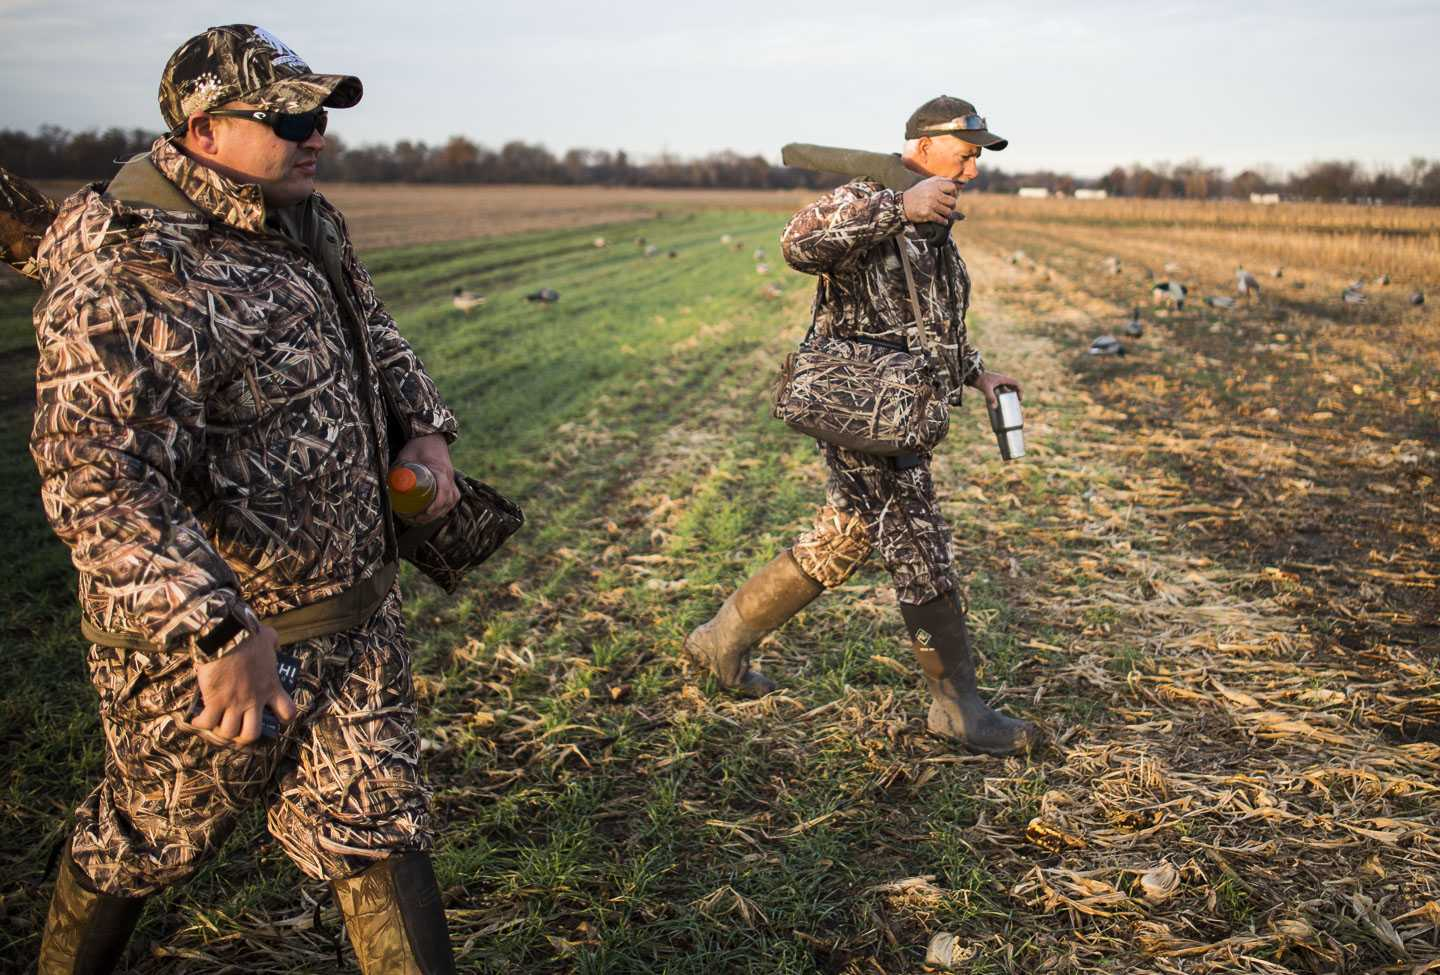 Grassy Lake Hunting Club guide Duane Smith, right, and John Thomas, of Nashville, Tenn., make their way to a hunting blind Wednesday, Nov. 30, 2016, during a Wounded Warriors duck hunt in Jonesboro. (Ryan Michalesko   @photosbylesko)